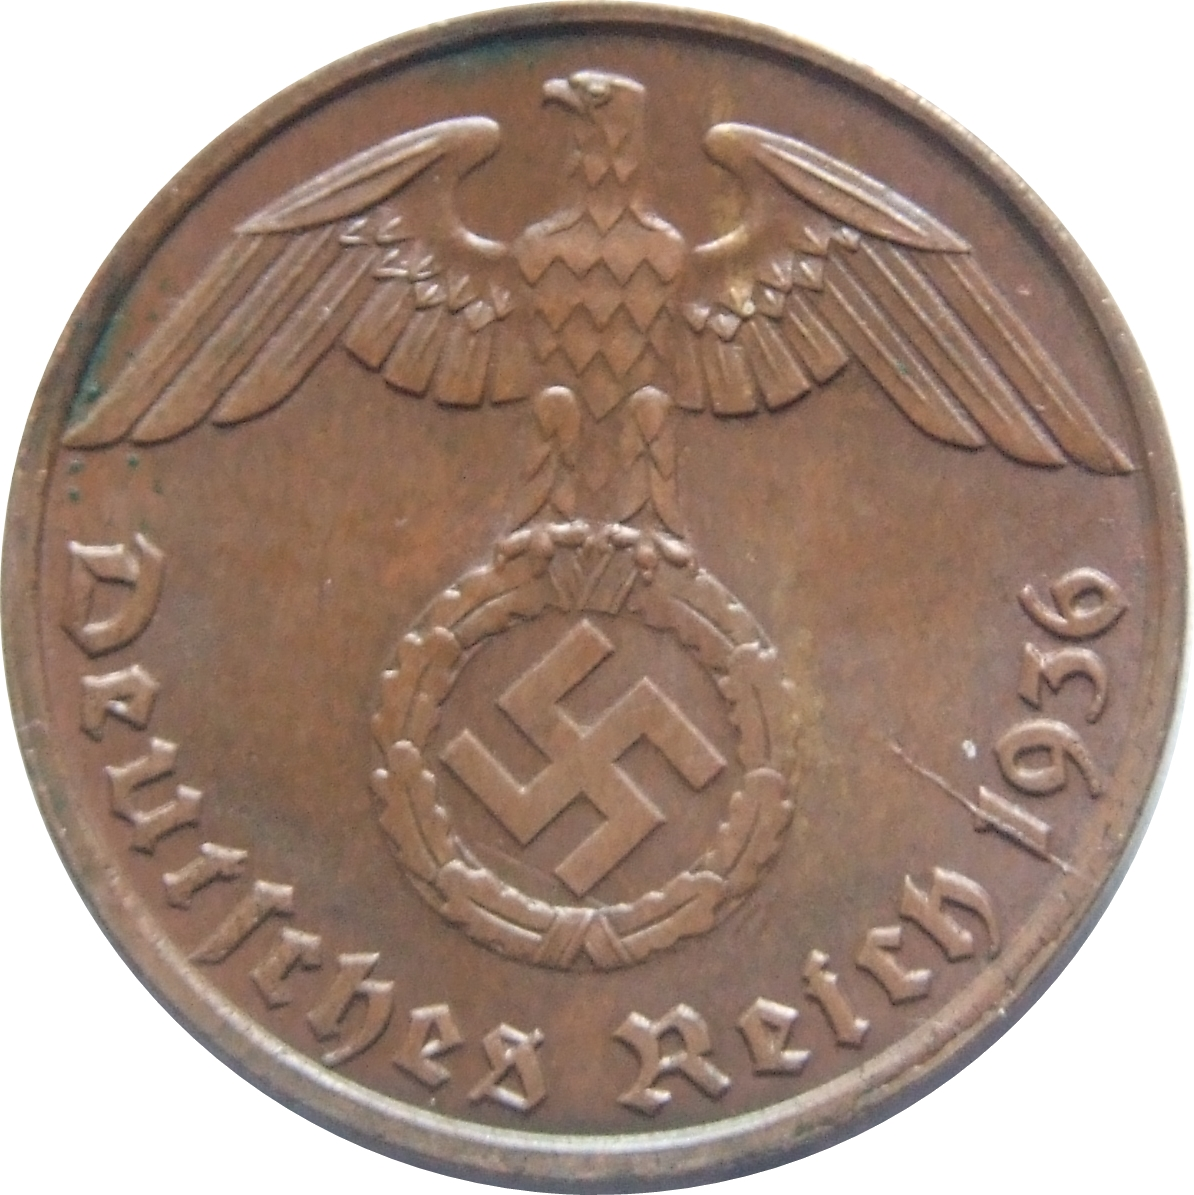 1 404 5 10 pfennig  with Swastika Lot of Germany 10 coins